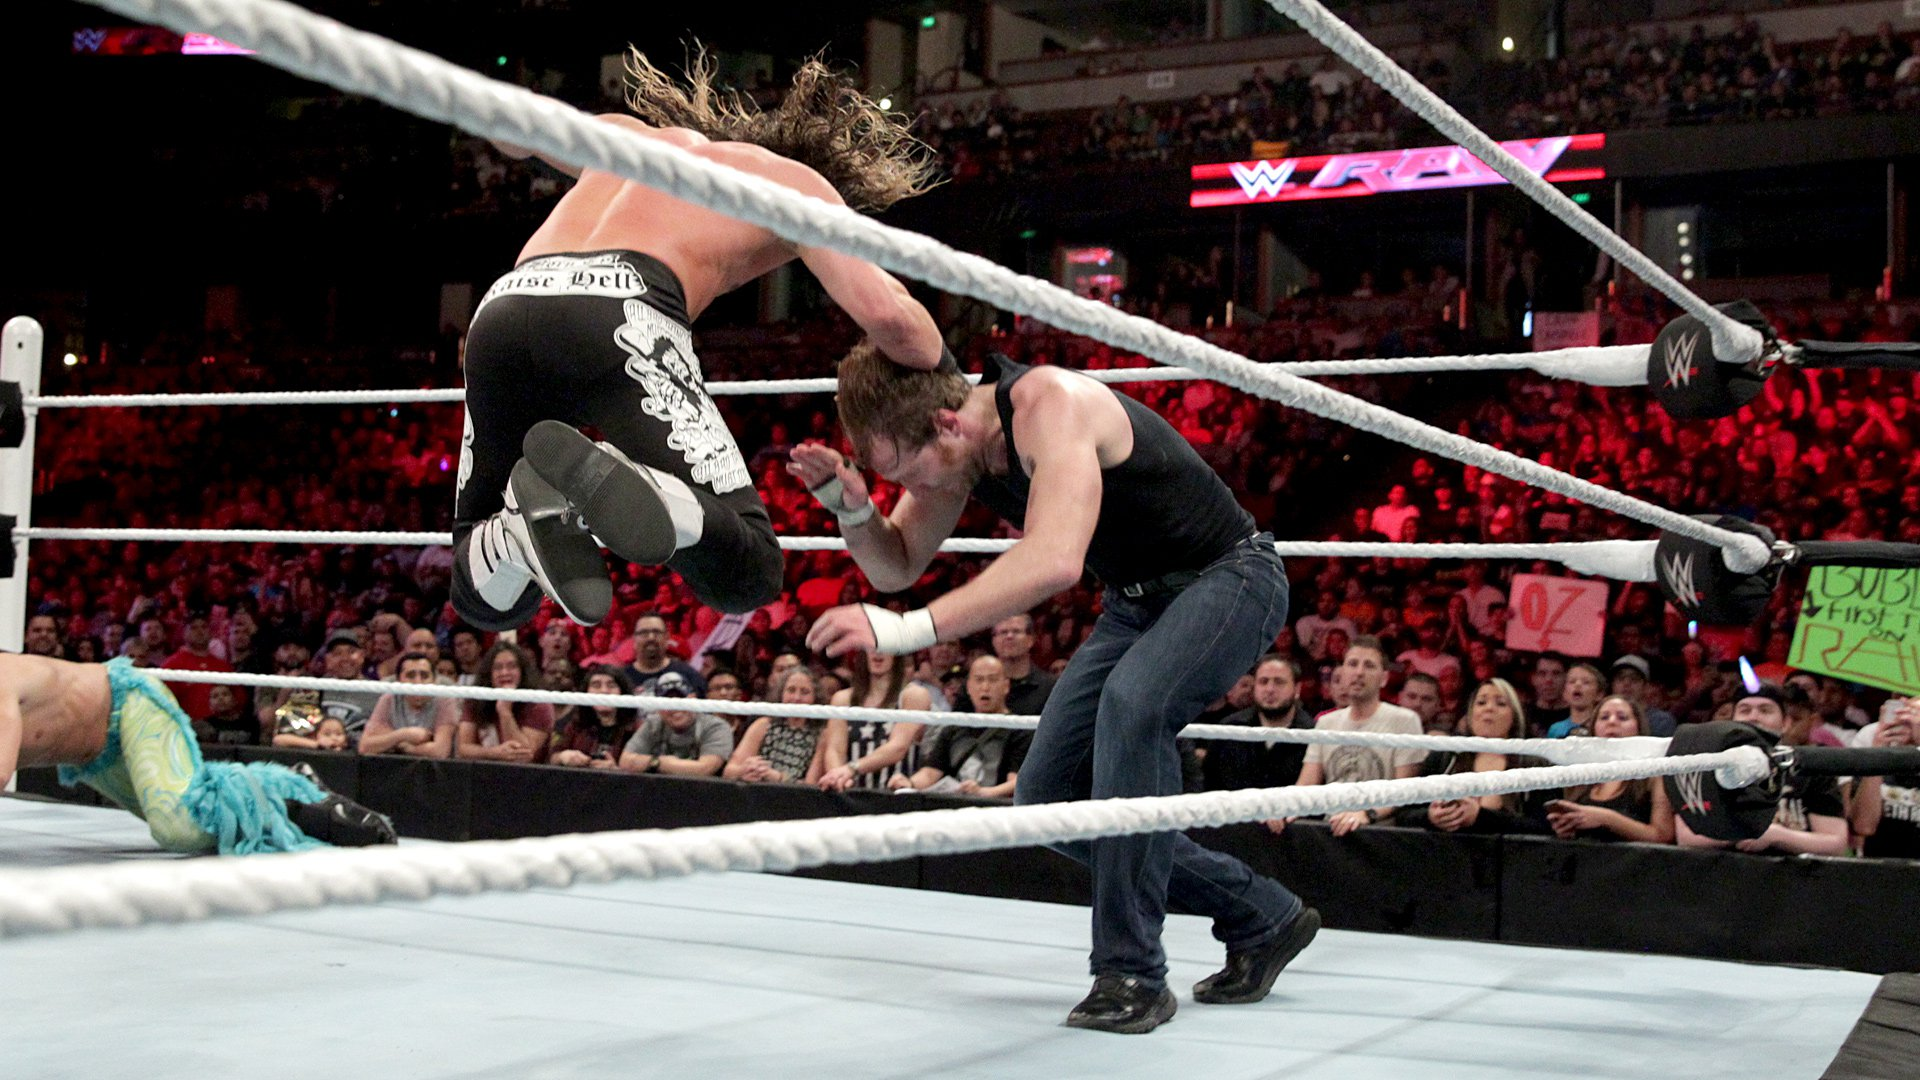 Ziggler takes control after slamming the champion face-first into the mat from the top rope.